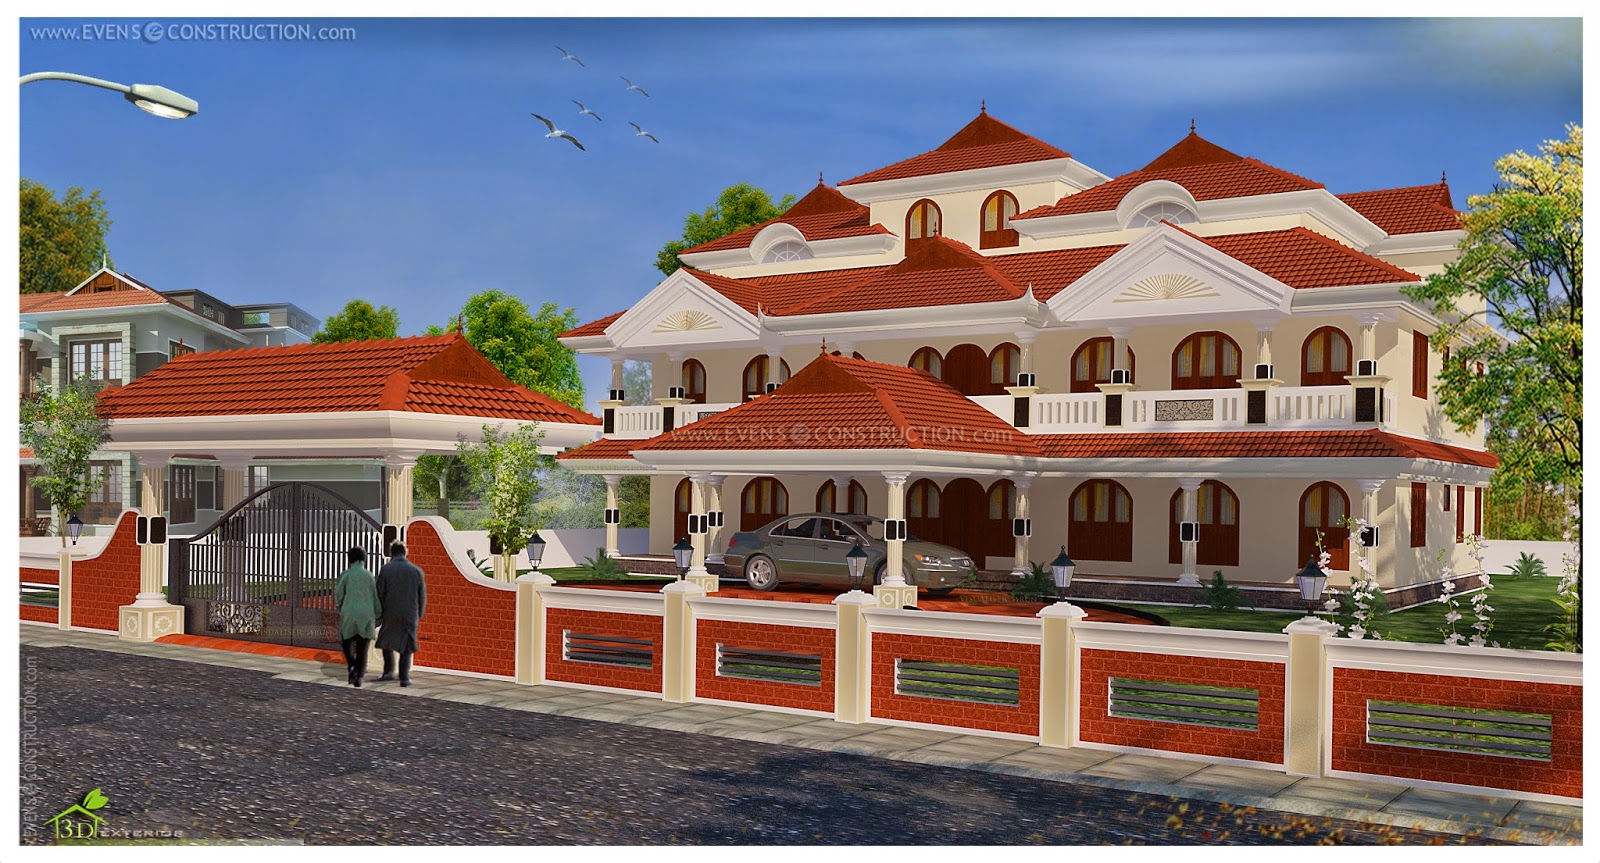 Evens construction pvt ltd big luxury home design for Big home designs